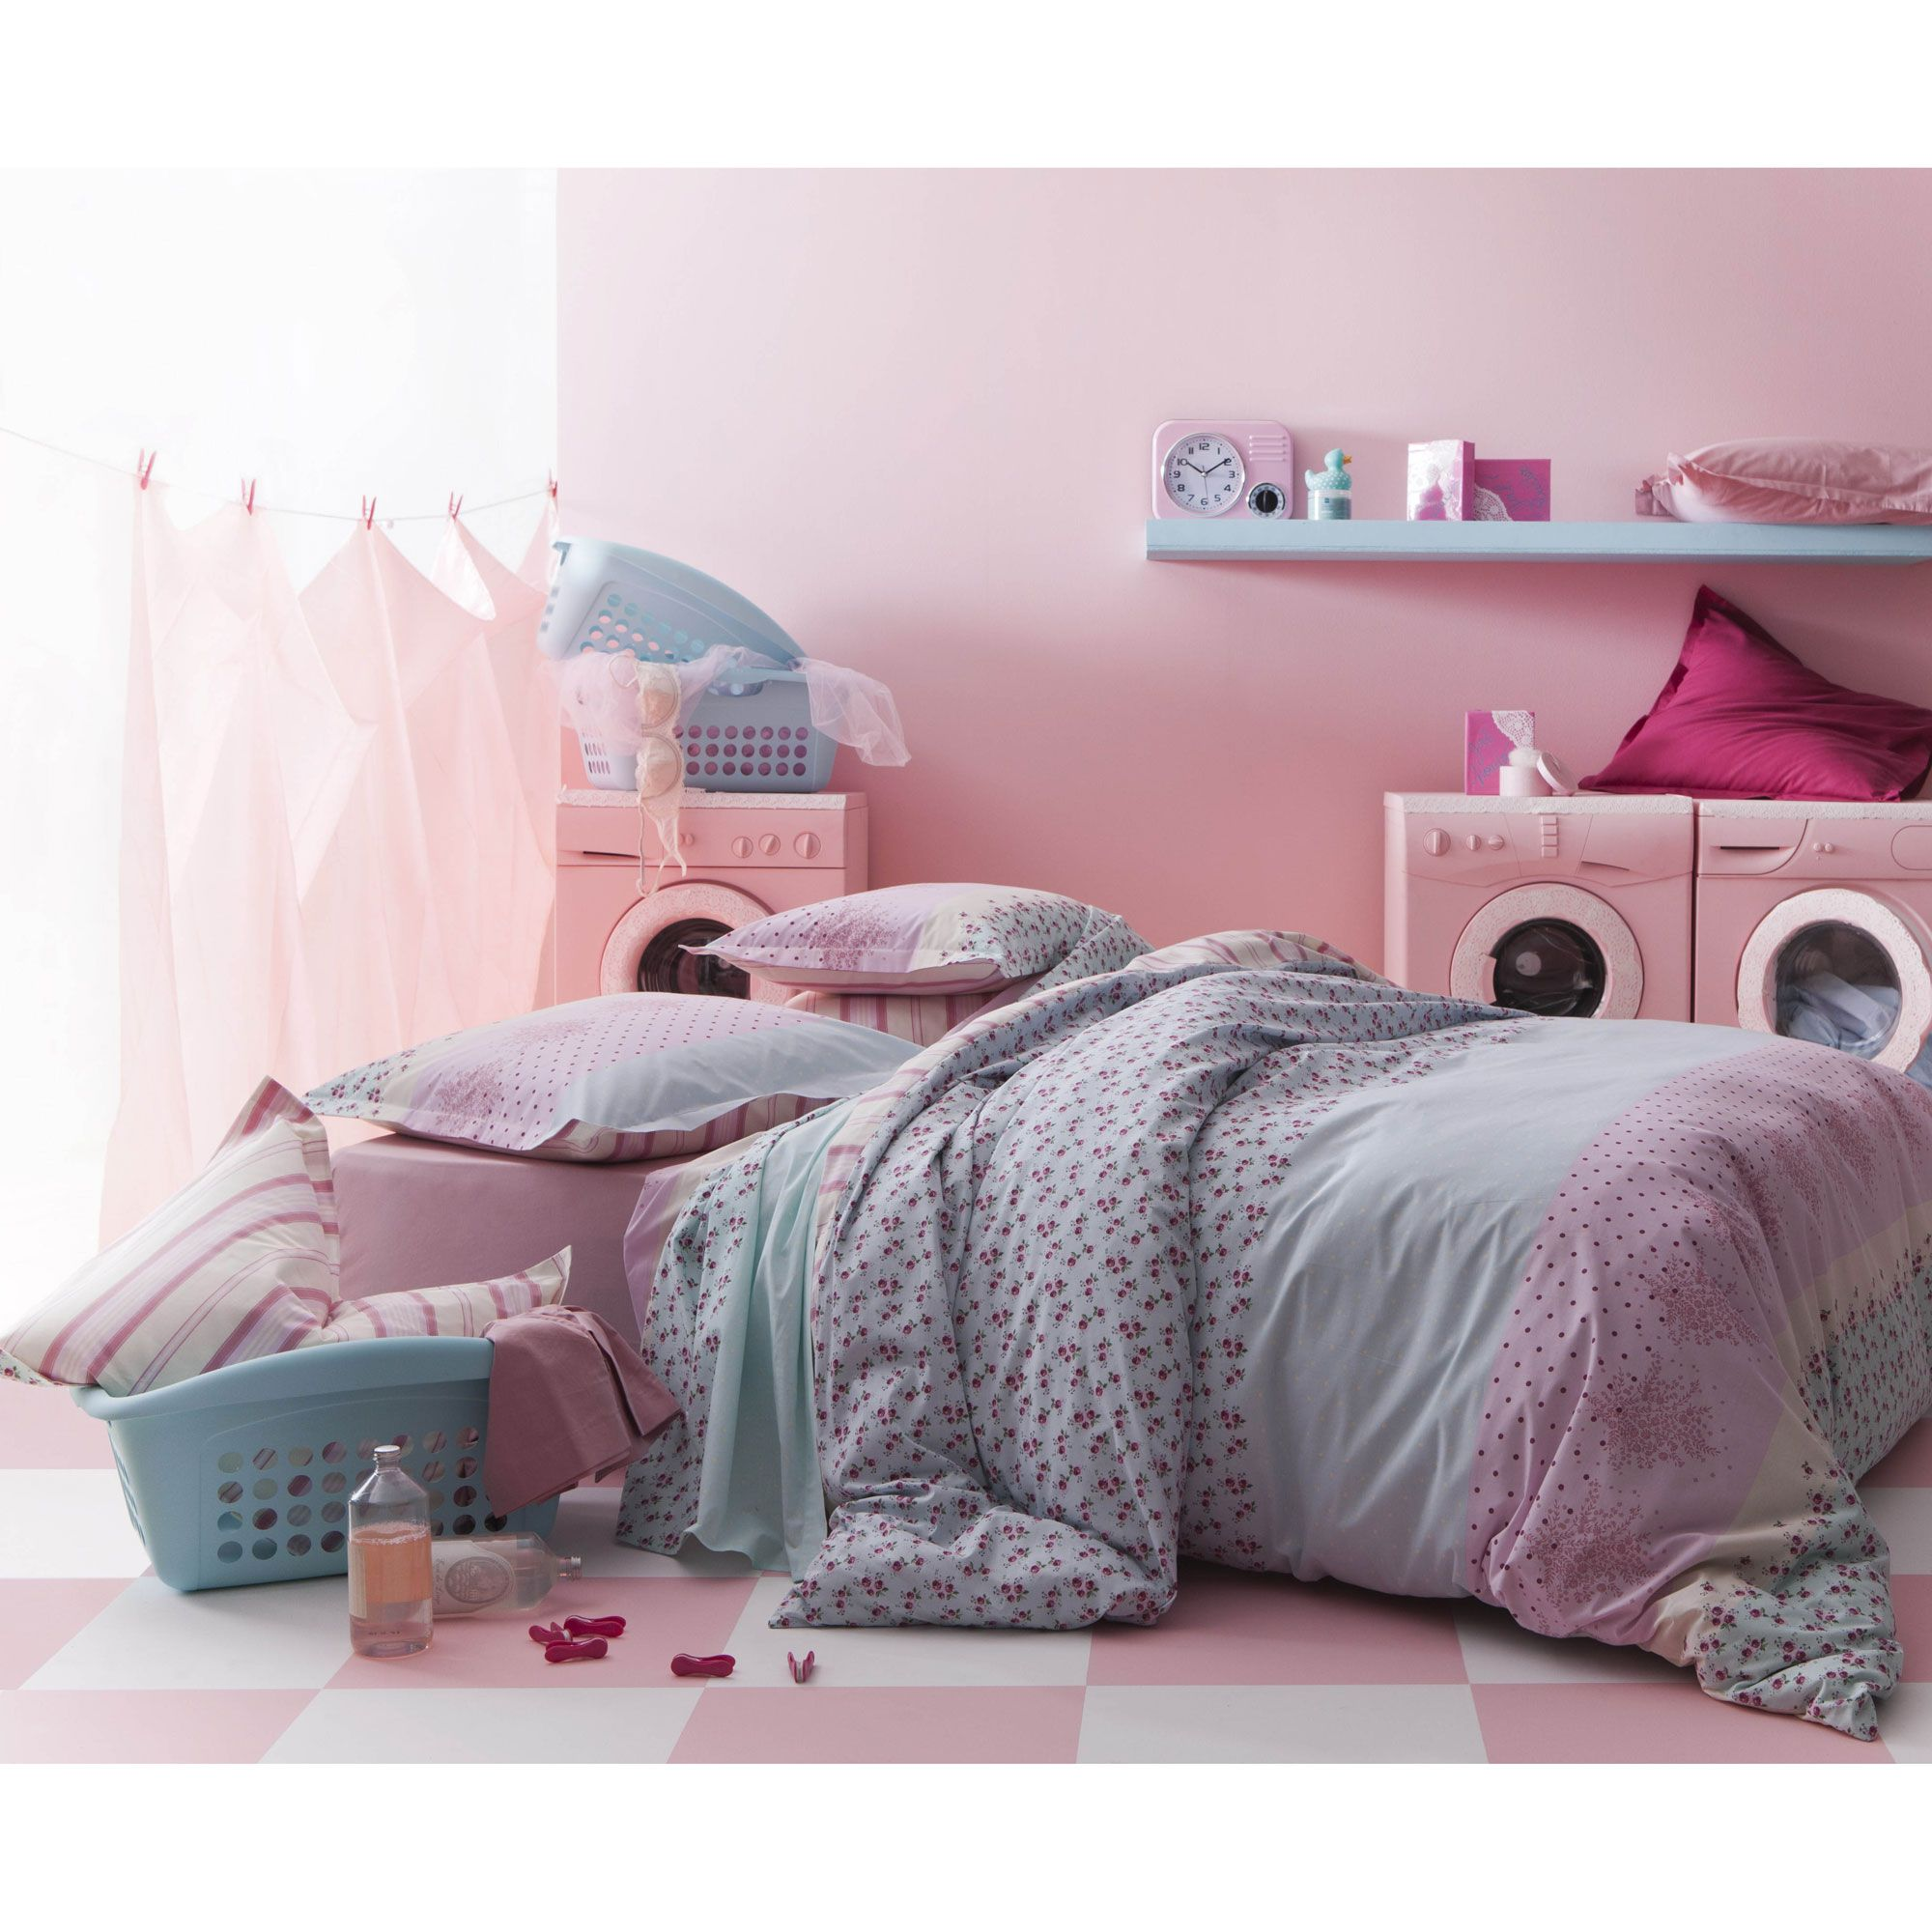 housse de couette 100 coton motifs bleu rose pastels. Black Bedroom Furniture Sets. Home Design Ideas